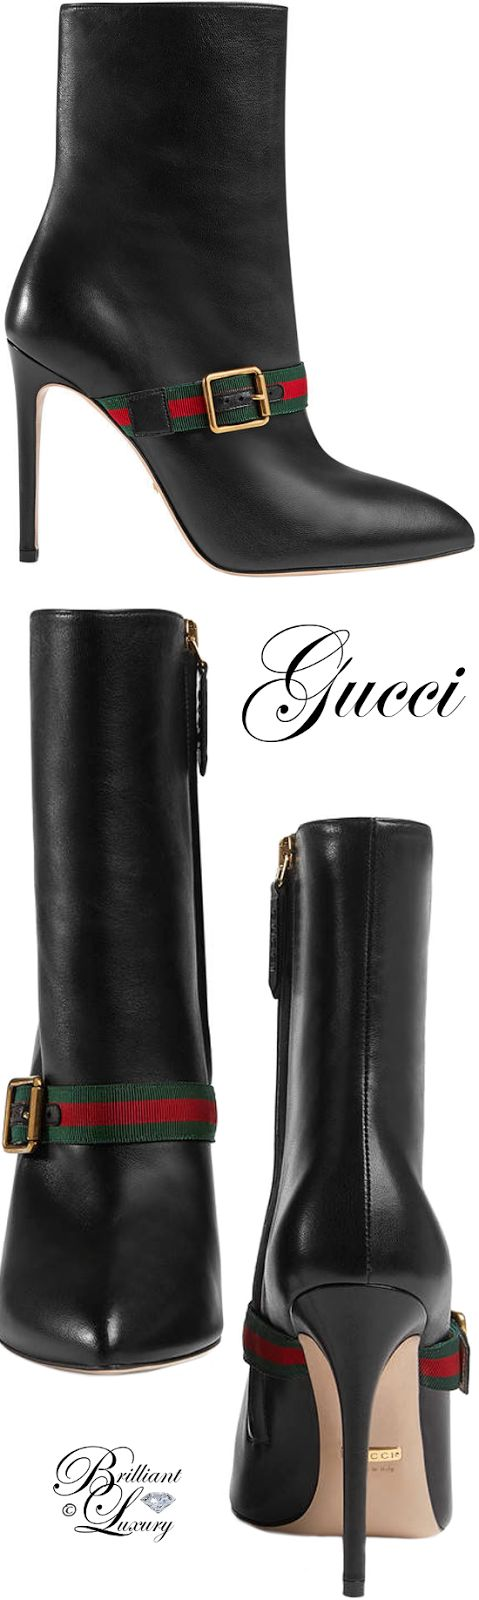 Brilliant Luxury ♦ Gucci Sylvie leather ankle boot